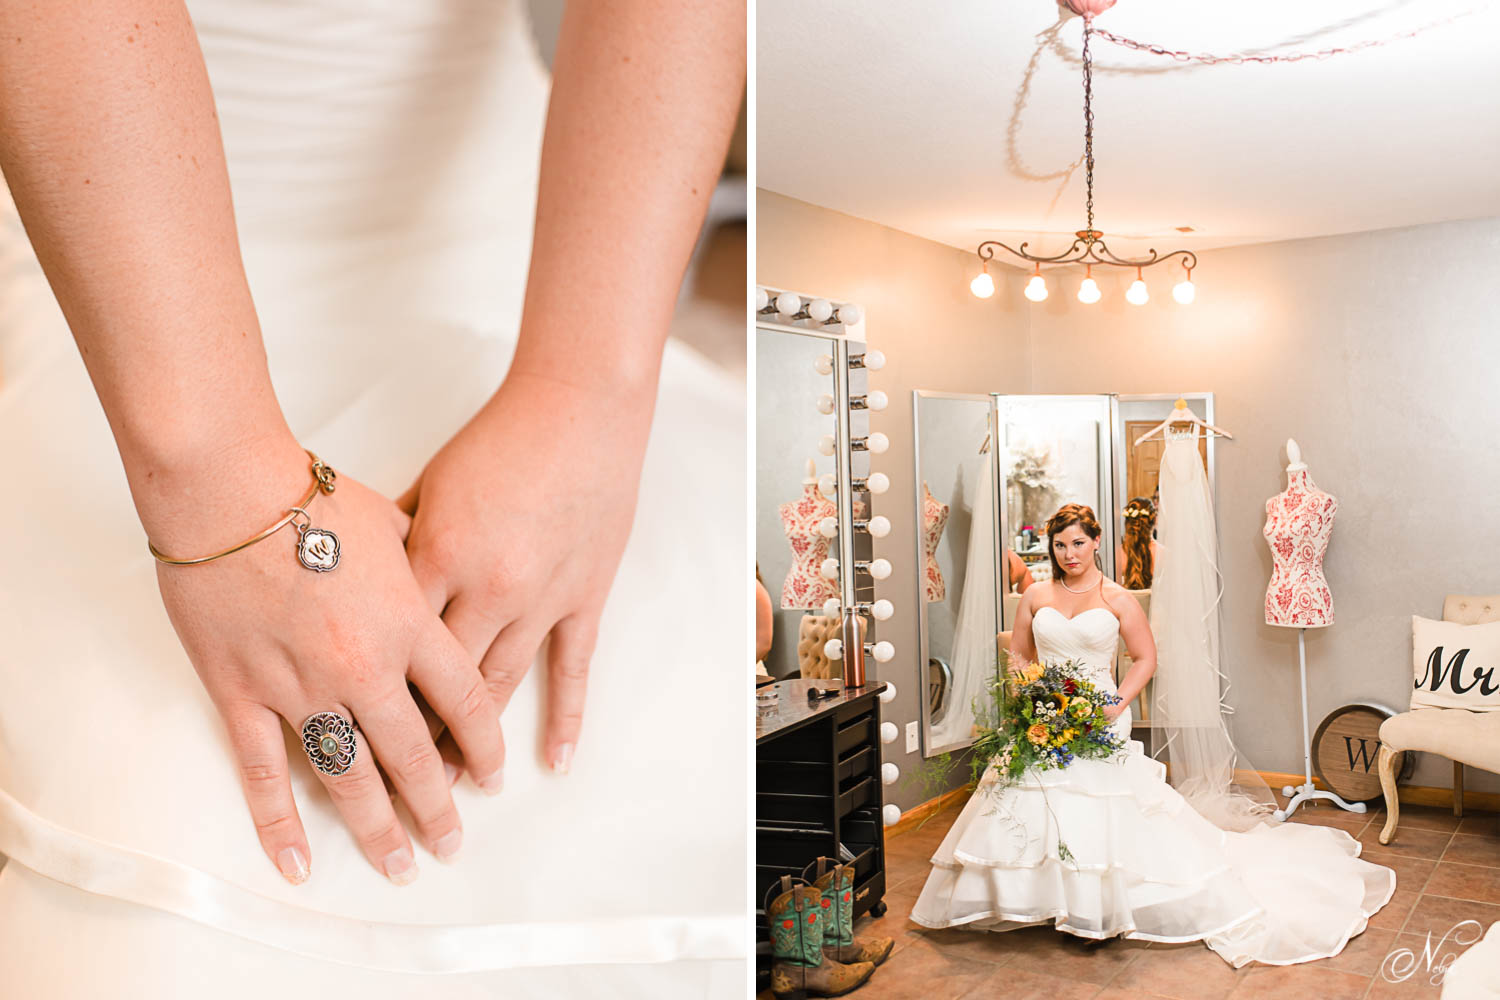 bride's hands with monogramed charm bracelet and bride sitting with bouquet in bridal suite at Sun dance farms in Knoxville